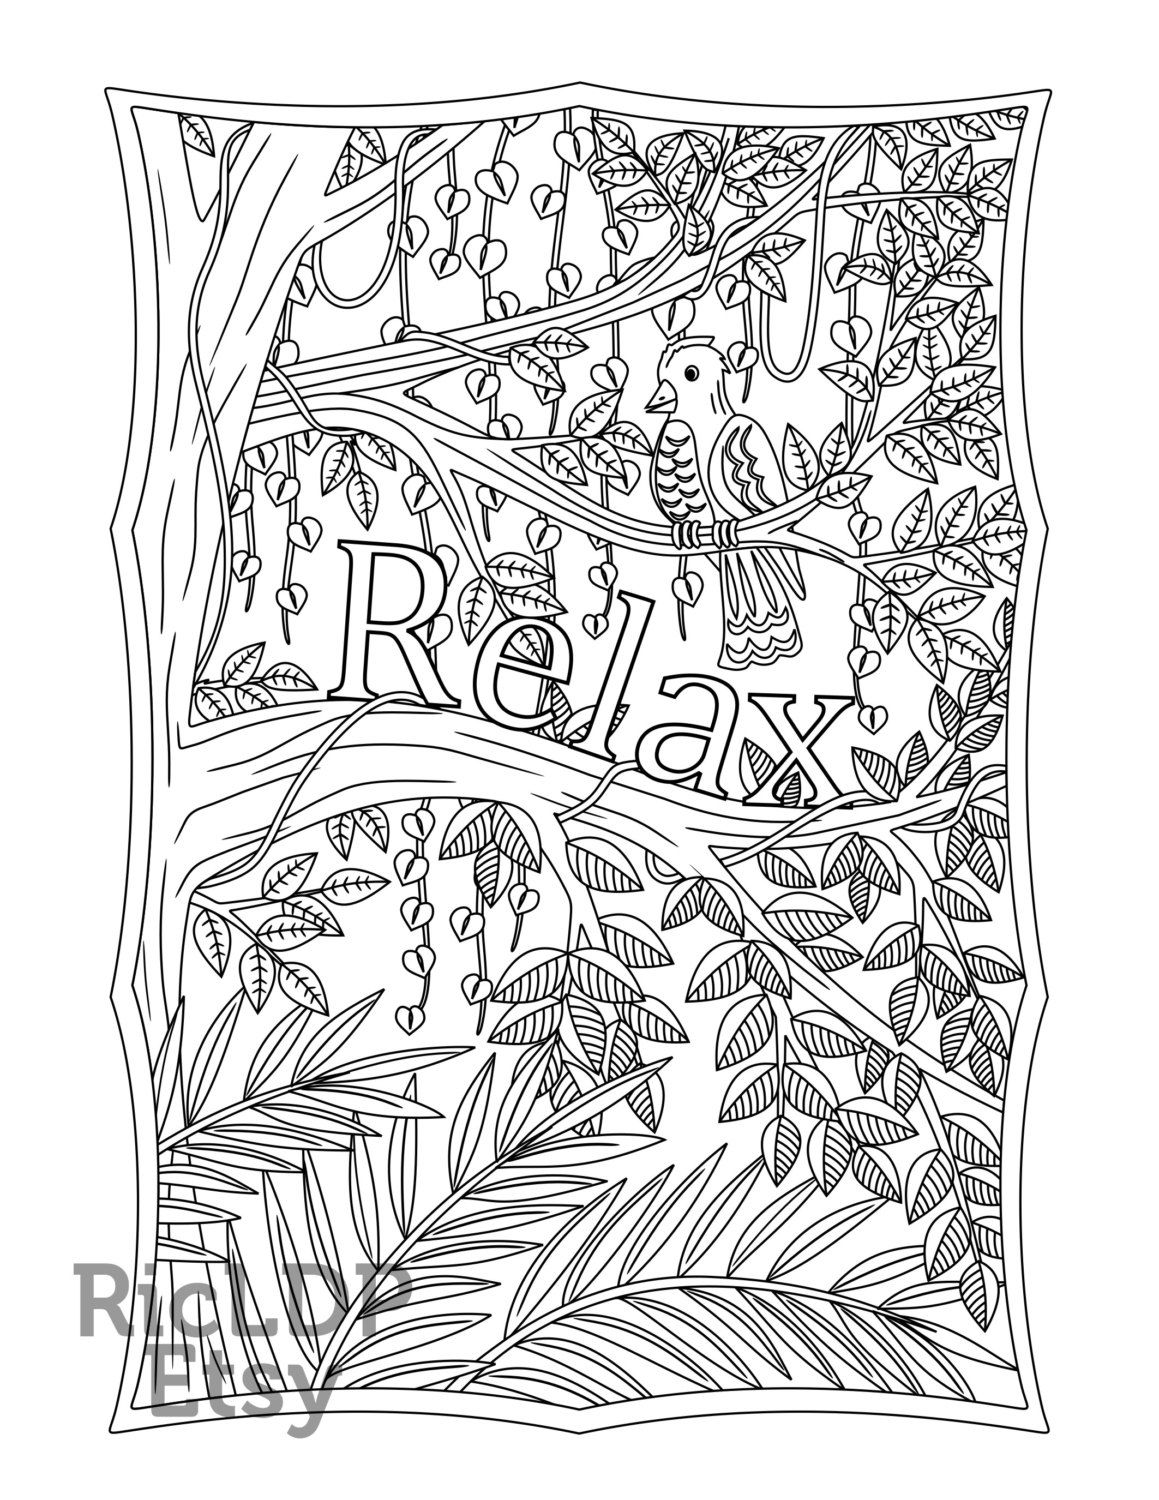 Printable \'Relax\' Bird, Leaves and Trees design Coloring page for ...